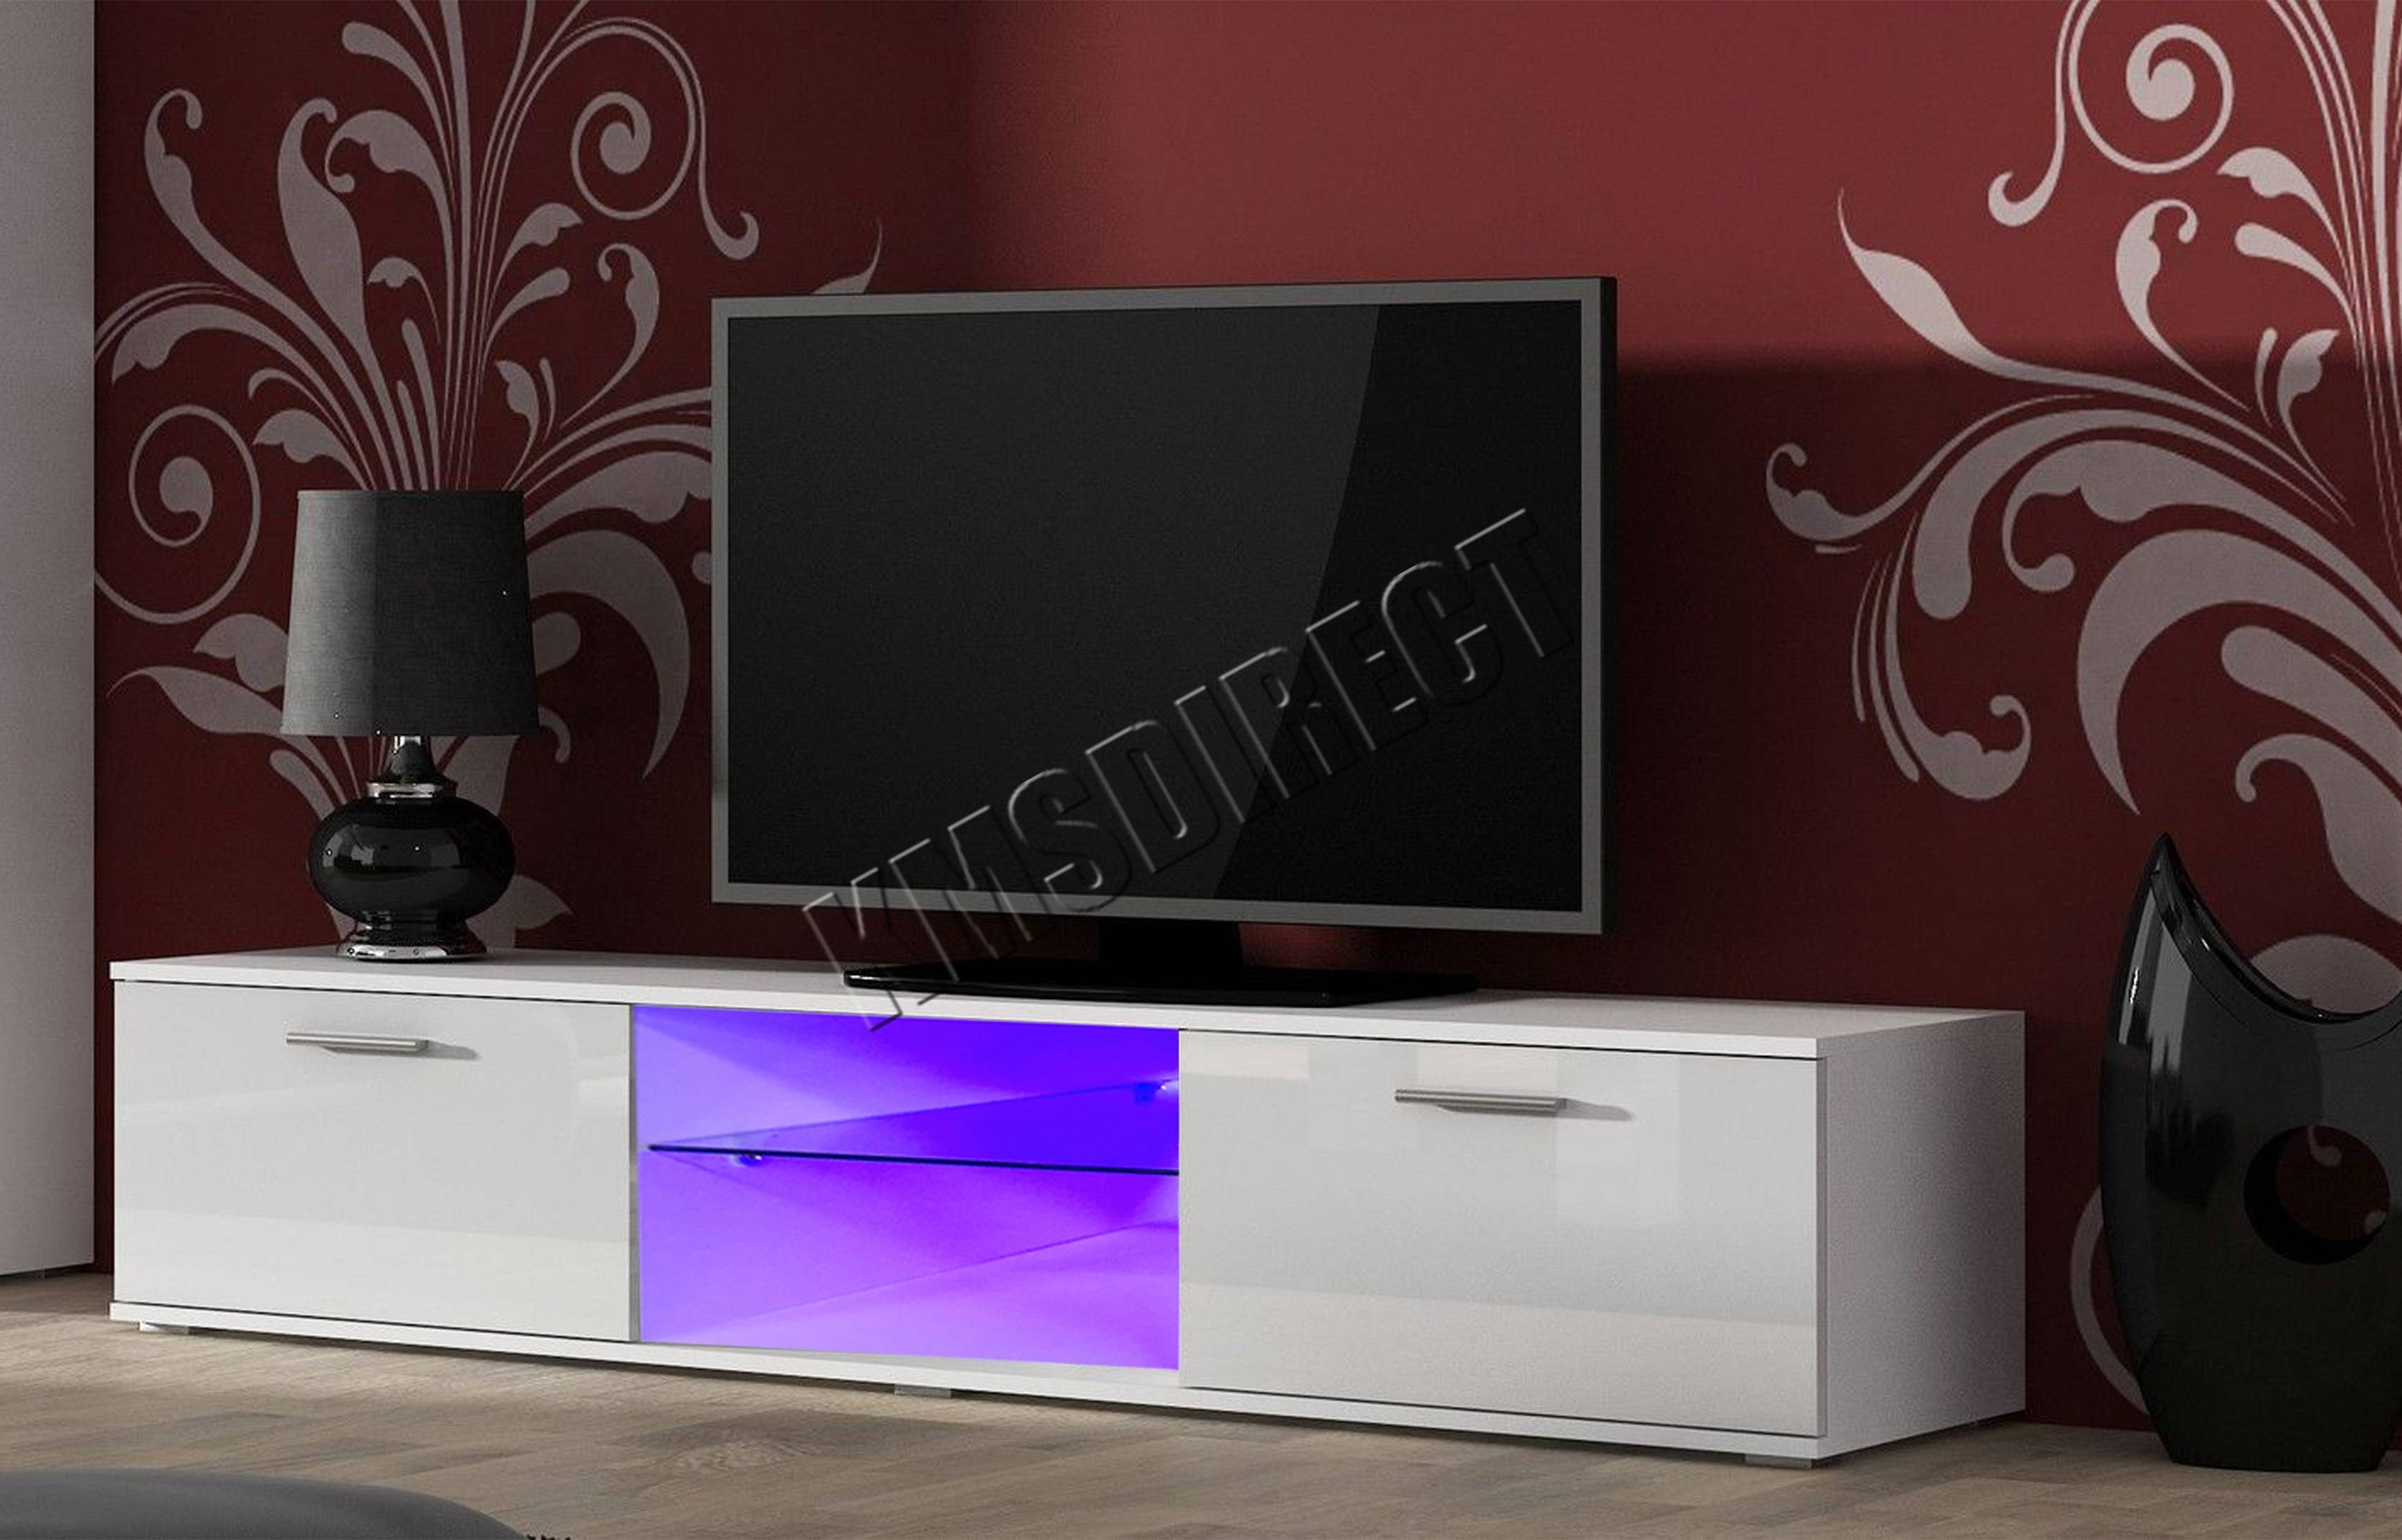 Spare Repair Modern High Gloss Matt Tv Cabinet Unit Stand Led intended for High Gloss White Tv Cabinets (Image 11 of 15)